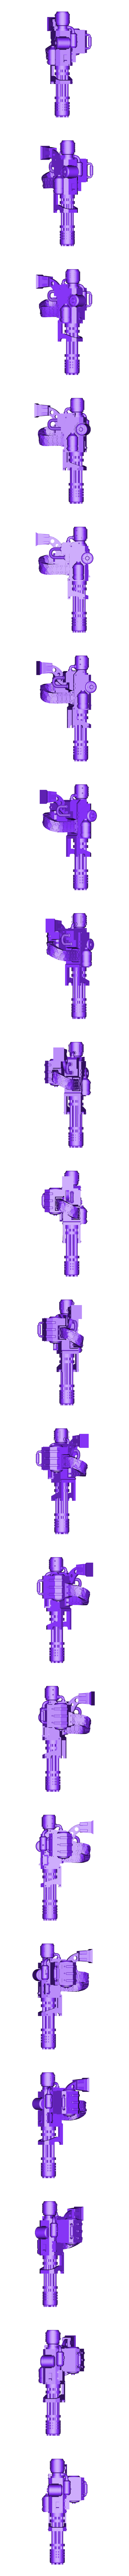 Chain_Gun__R_.stl Download free STL file Ultra Inquisitive and Super Pious Mega (and Slightly Insecure) Arachnid • 3D printer design, bentanweihao